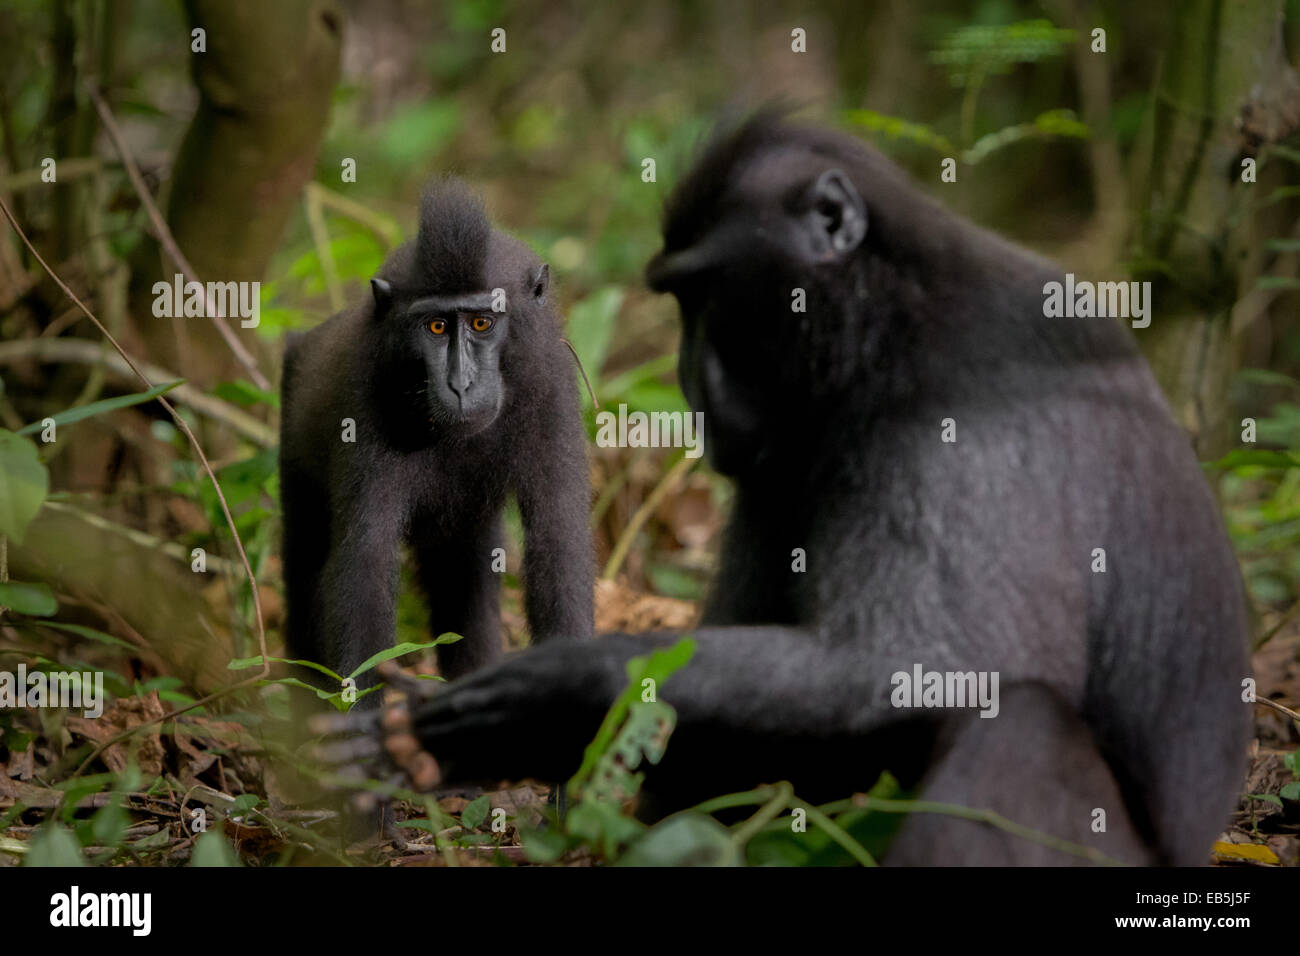 Sulawesi black-crested macaque (Macaca nigra) in Tangkoko nature reserves, North Sulawesi. - Stock Image